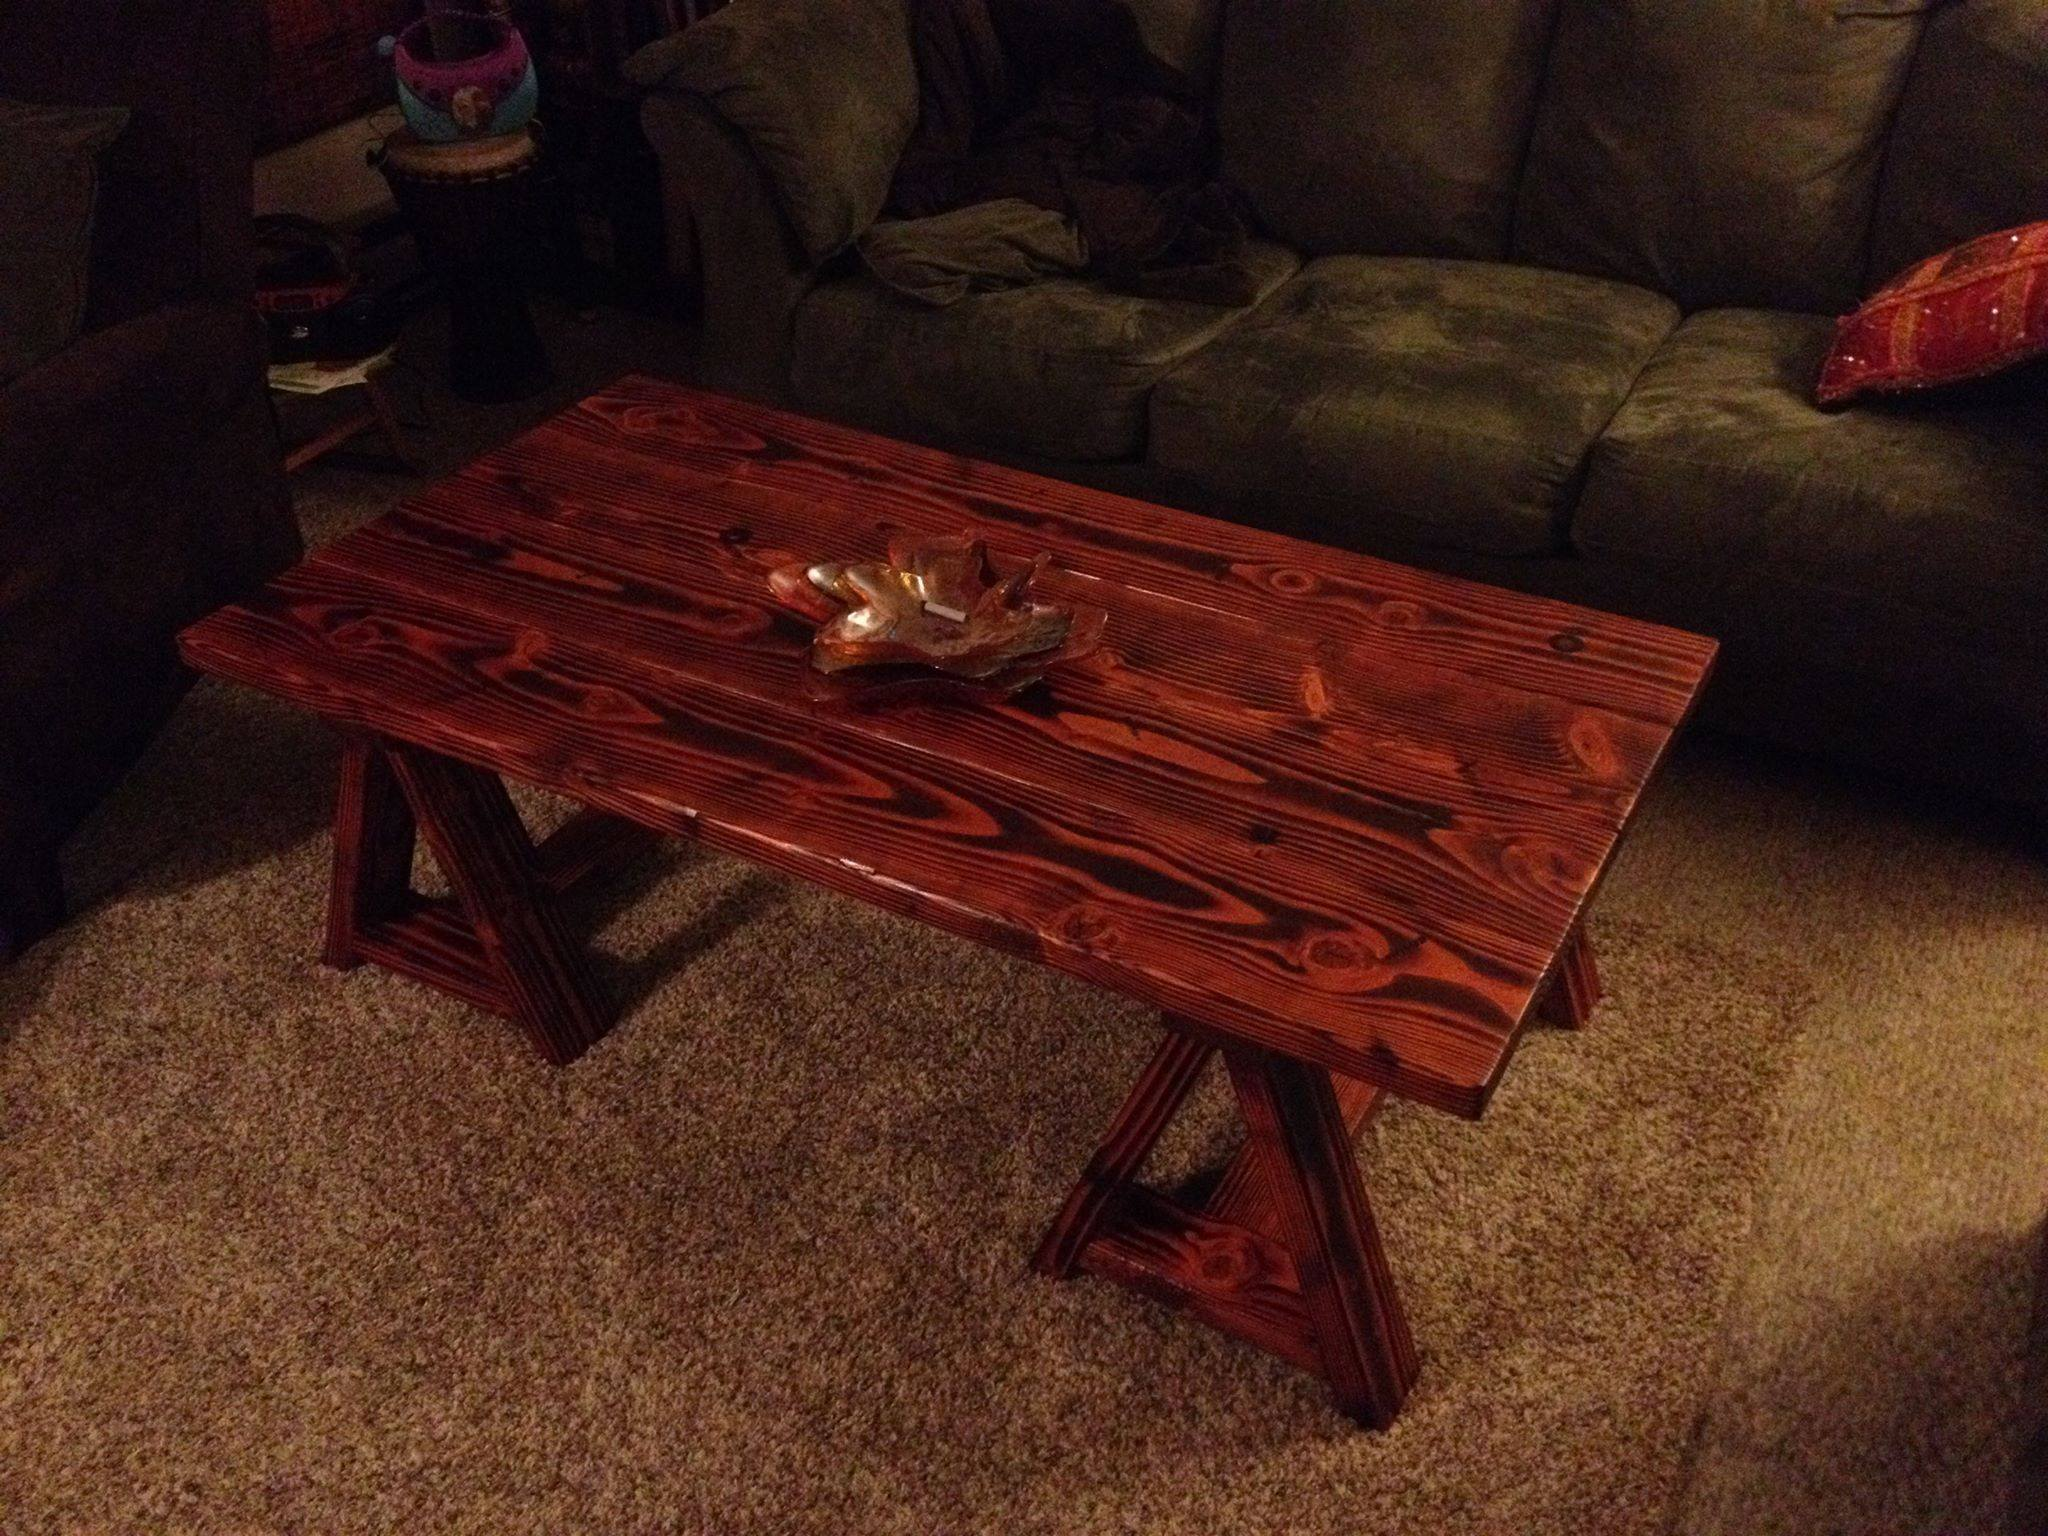 From Doane Hopkins: Saw Horse Coffee Table from rogueengineer.com Made from construction grade lumber assembled with a Kreg pocket hole jig. I torched the table, put some Minwax pre-stain conditioner, three coats of their Gunstock stain, three coats of satin polyurethane on it and it didn't turn out to bad.